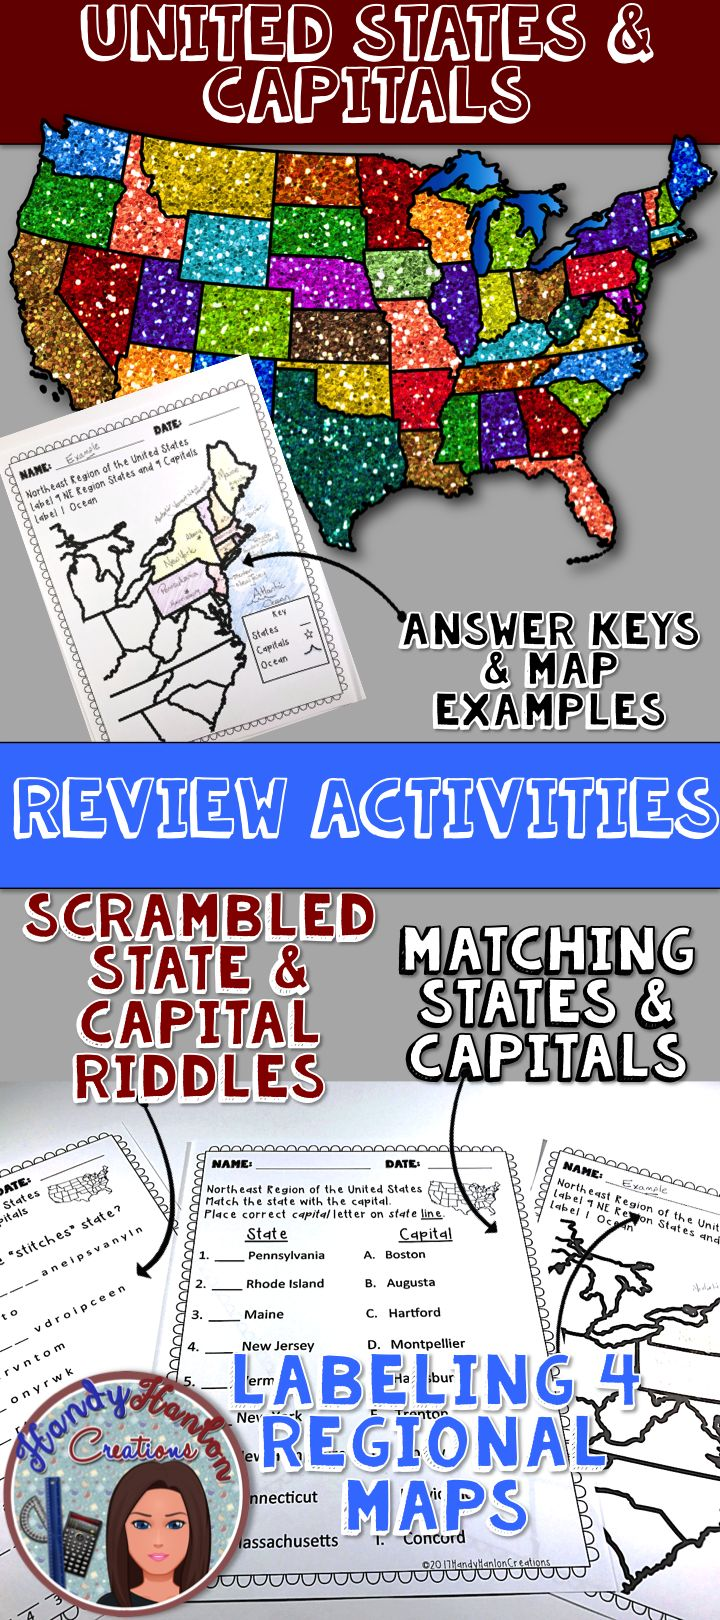 Best Ideas About United States Map Labeled On Pinterest - Map of usa with states and capitals and major cities